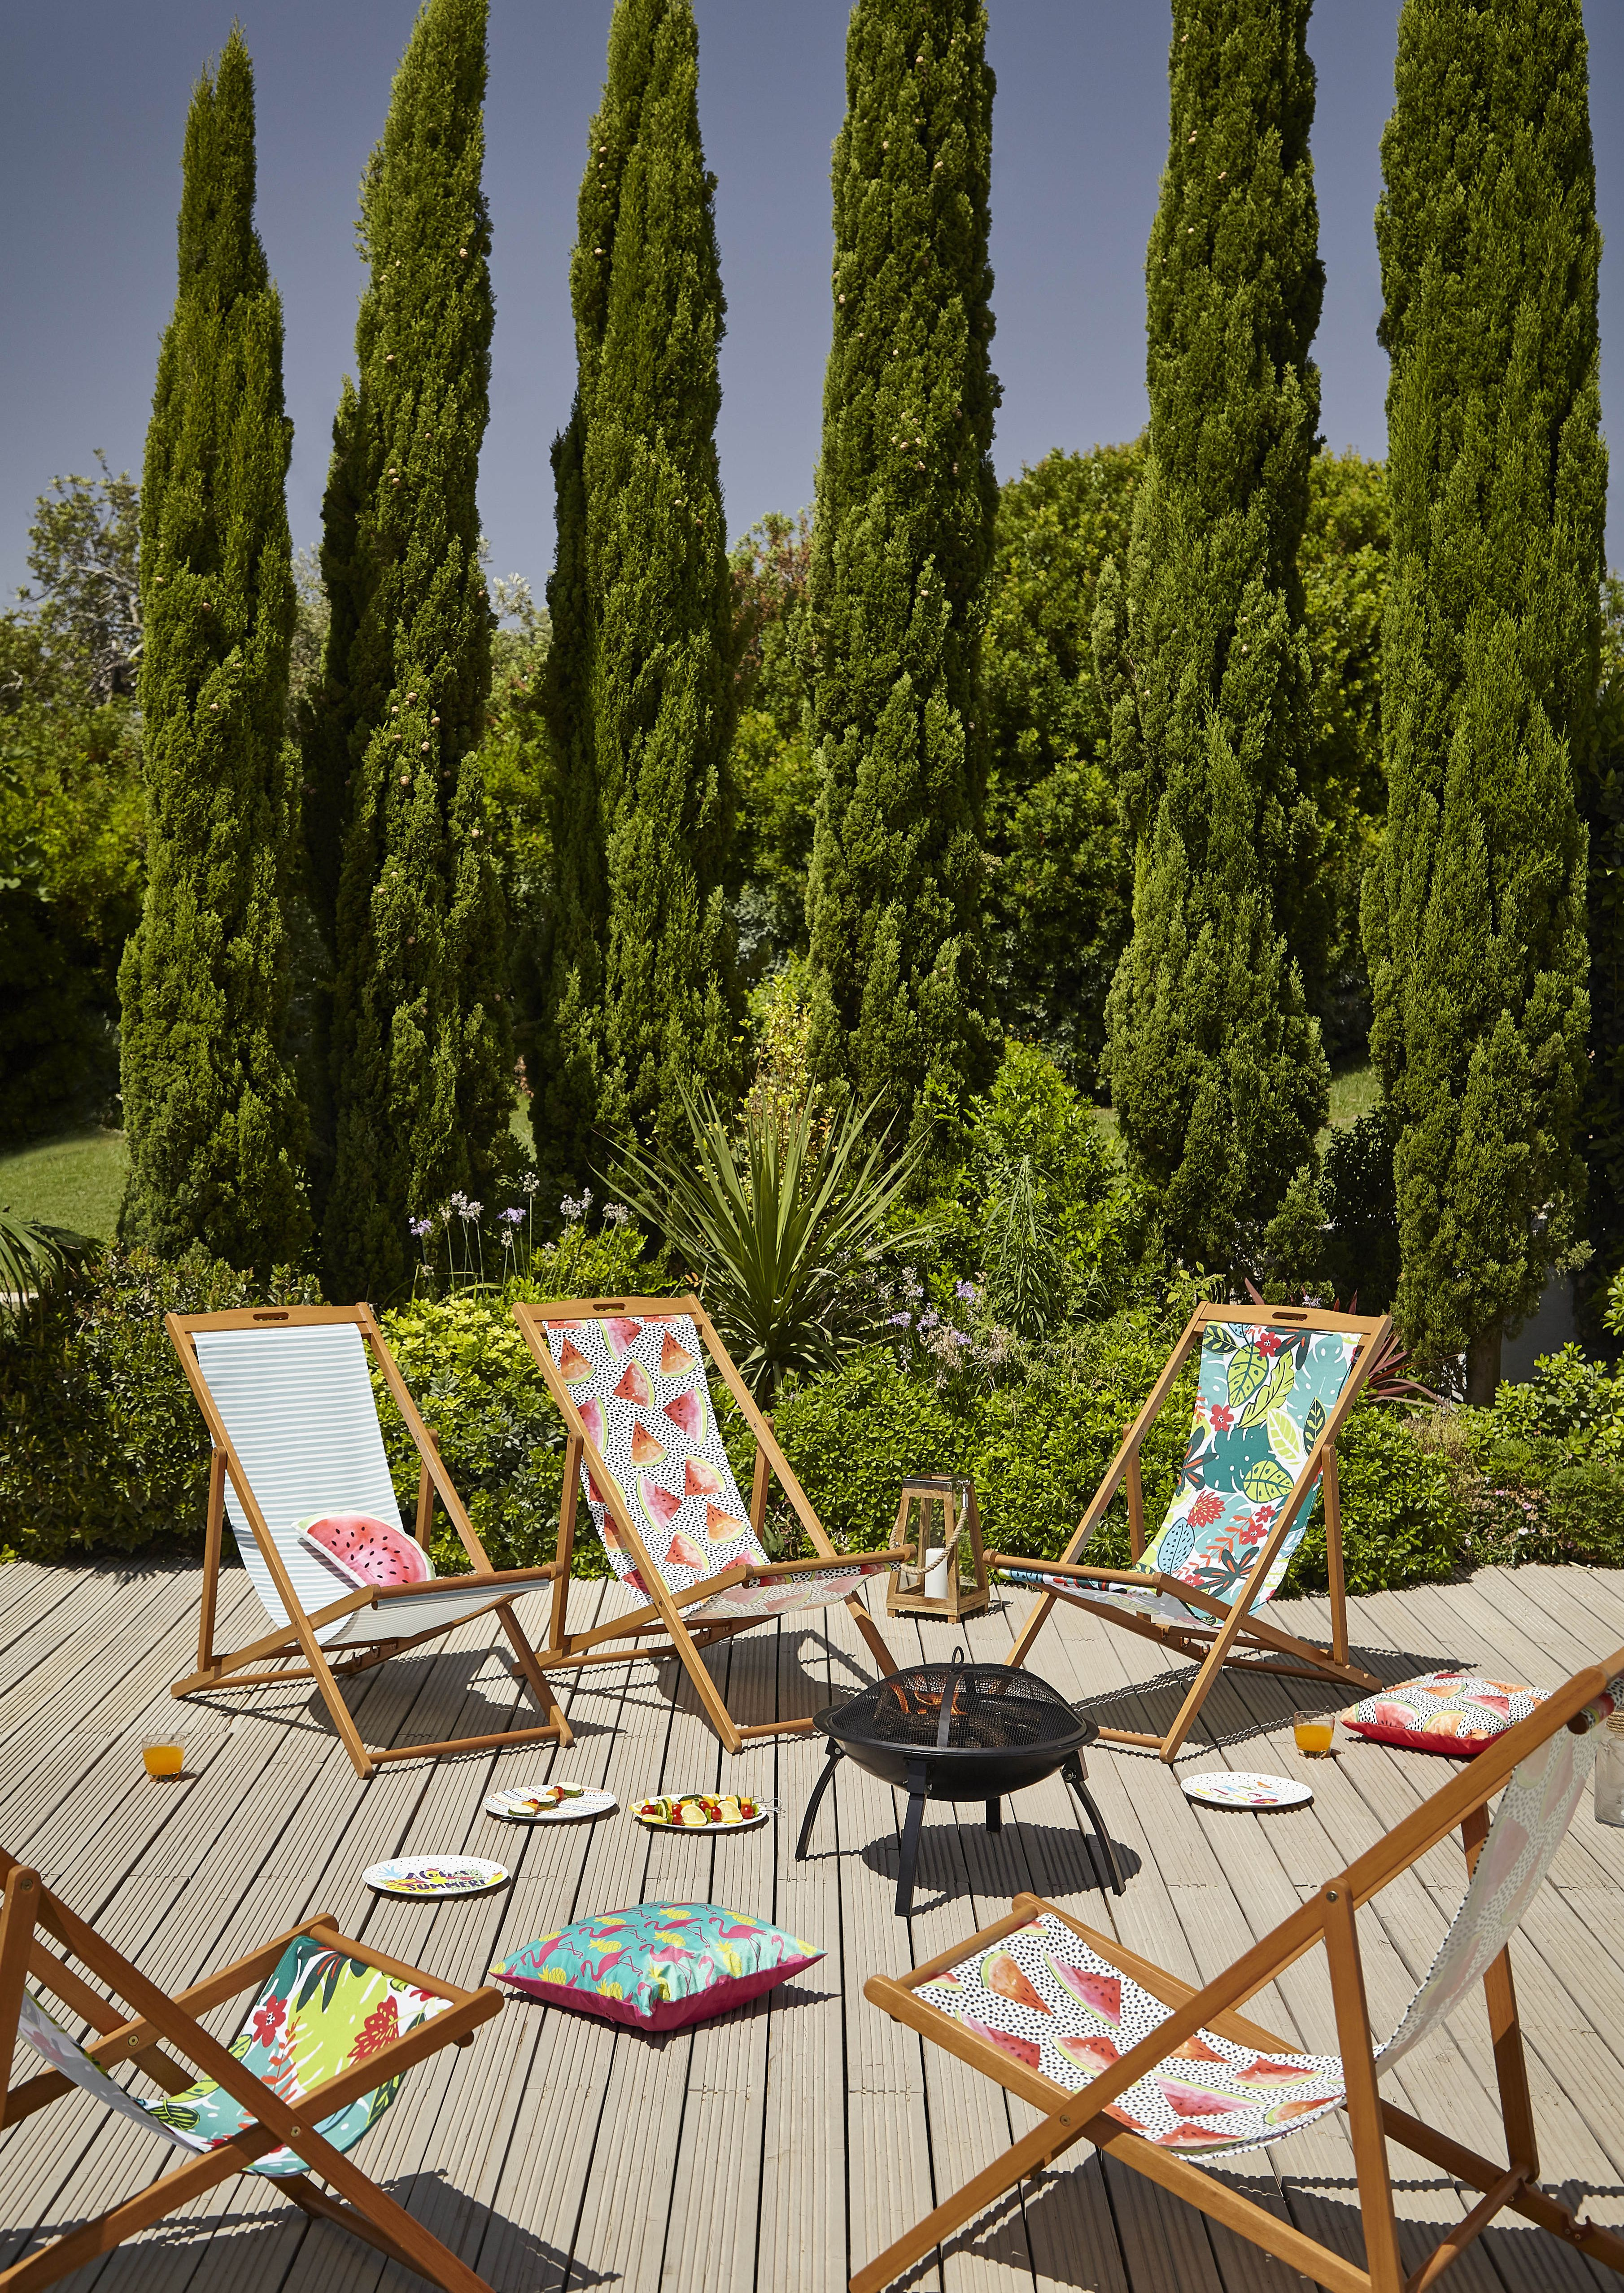 George Home patterned deck chairs